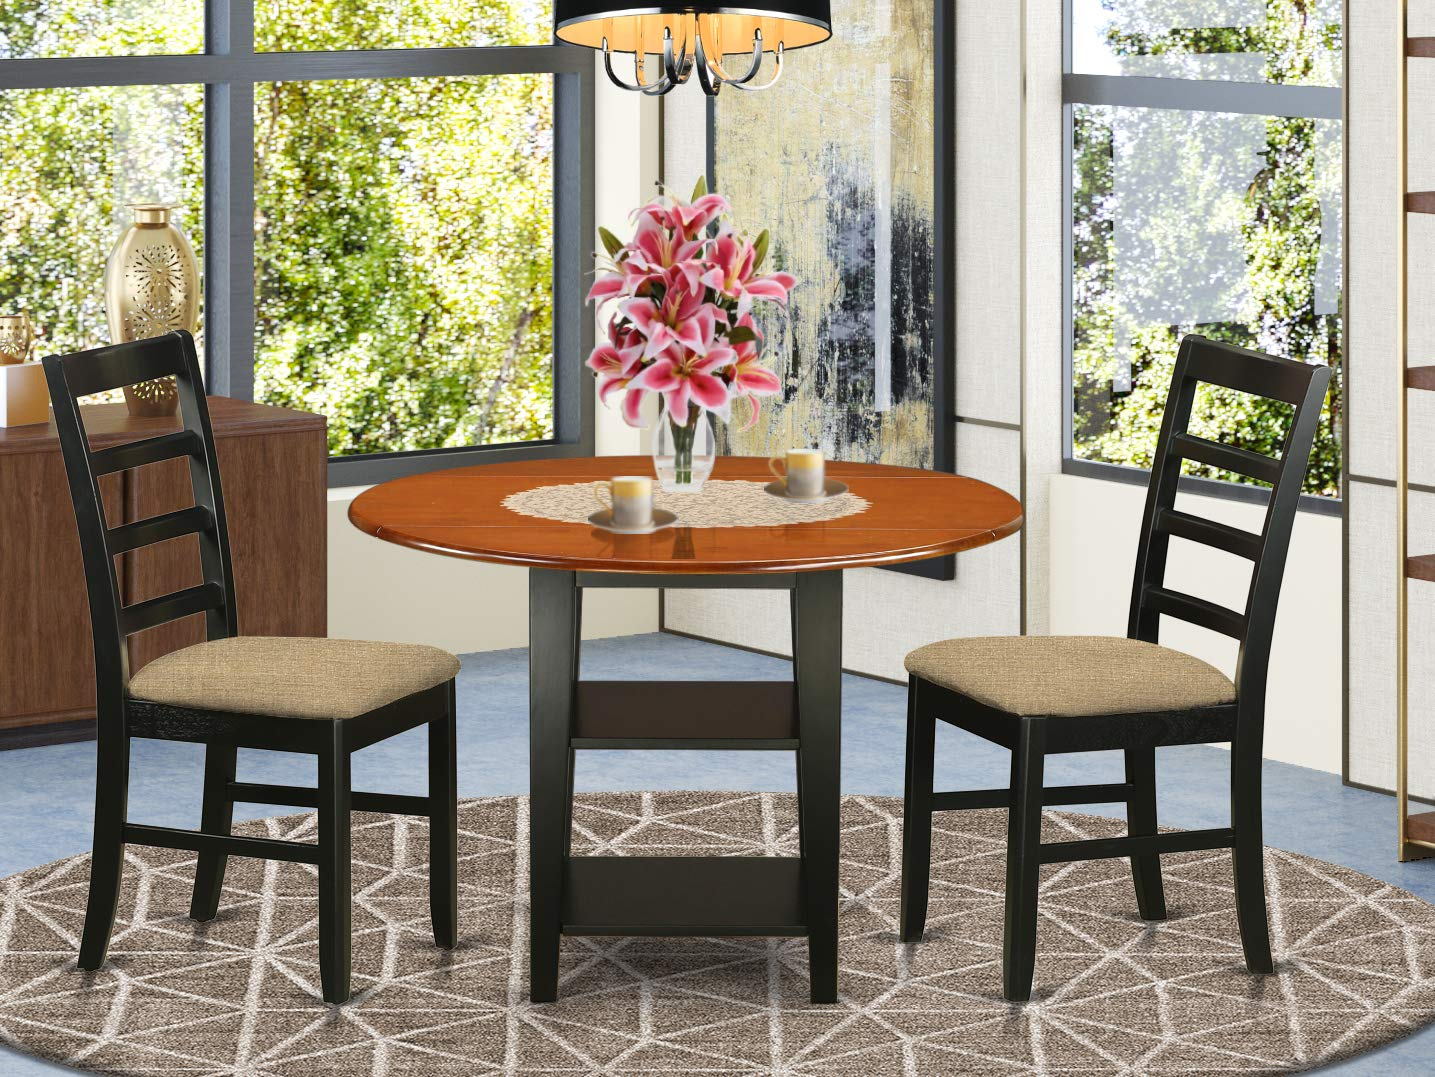 3 Piece Sudbury Set With One Round Dinette Table And 2 Dinette Chairs With Cushion Seat In A Elegant Black and Cherry Finish.